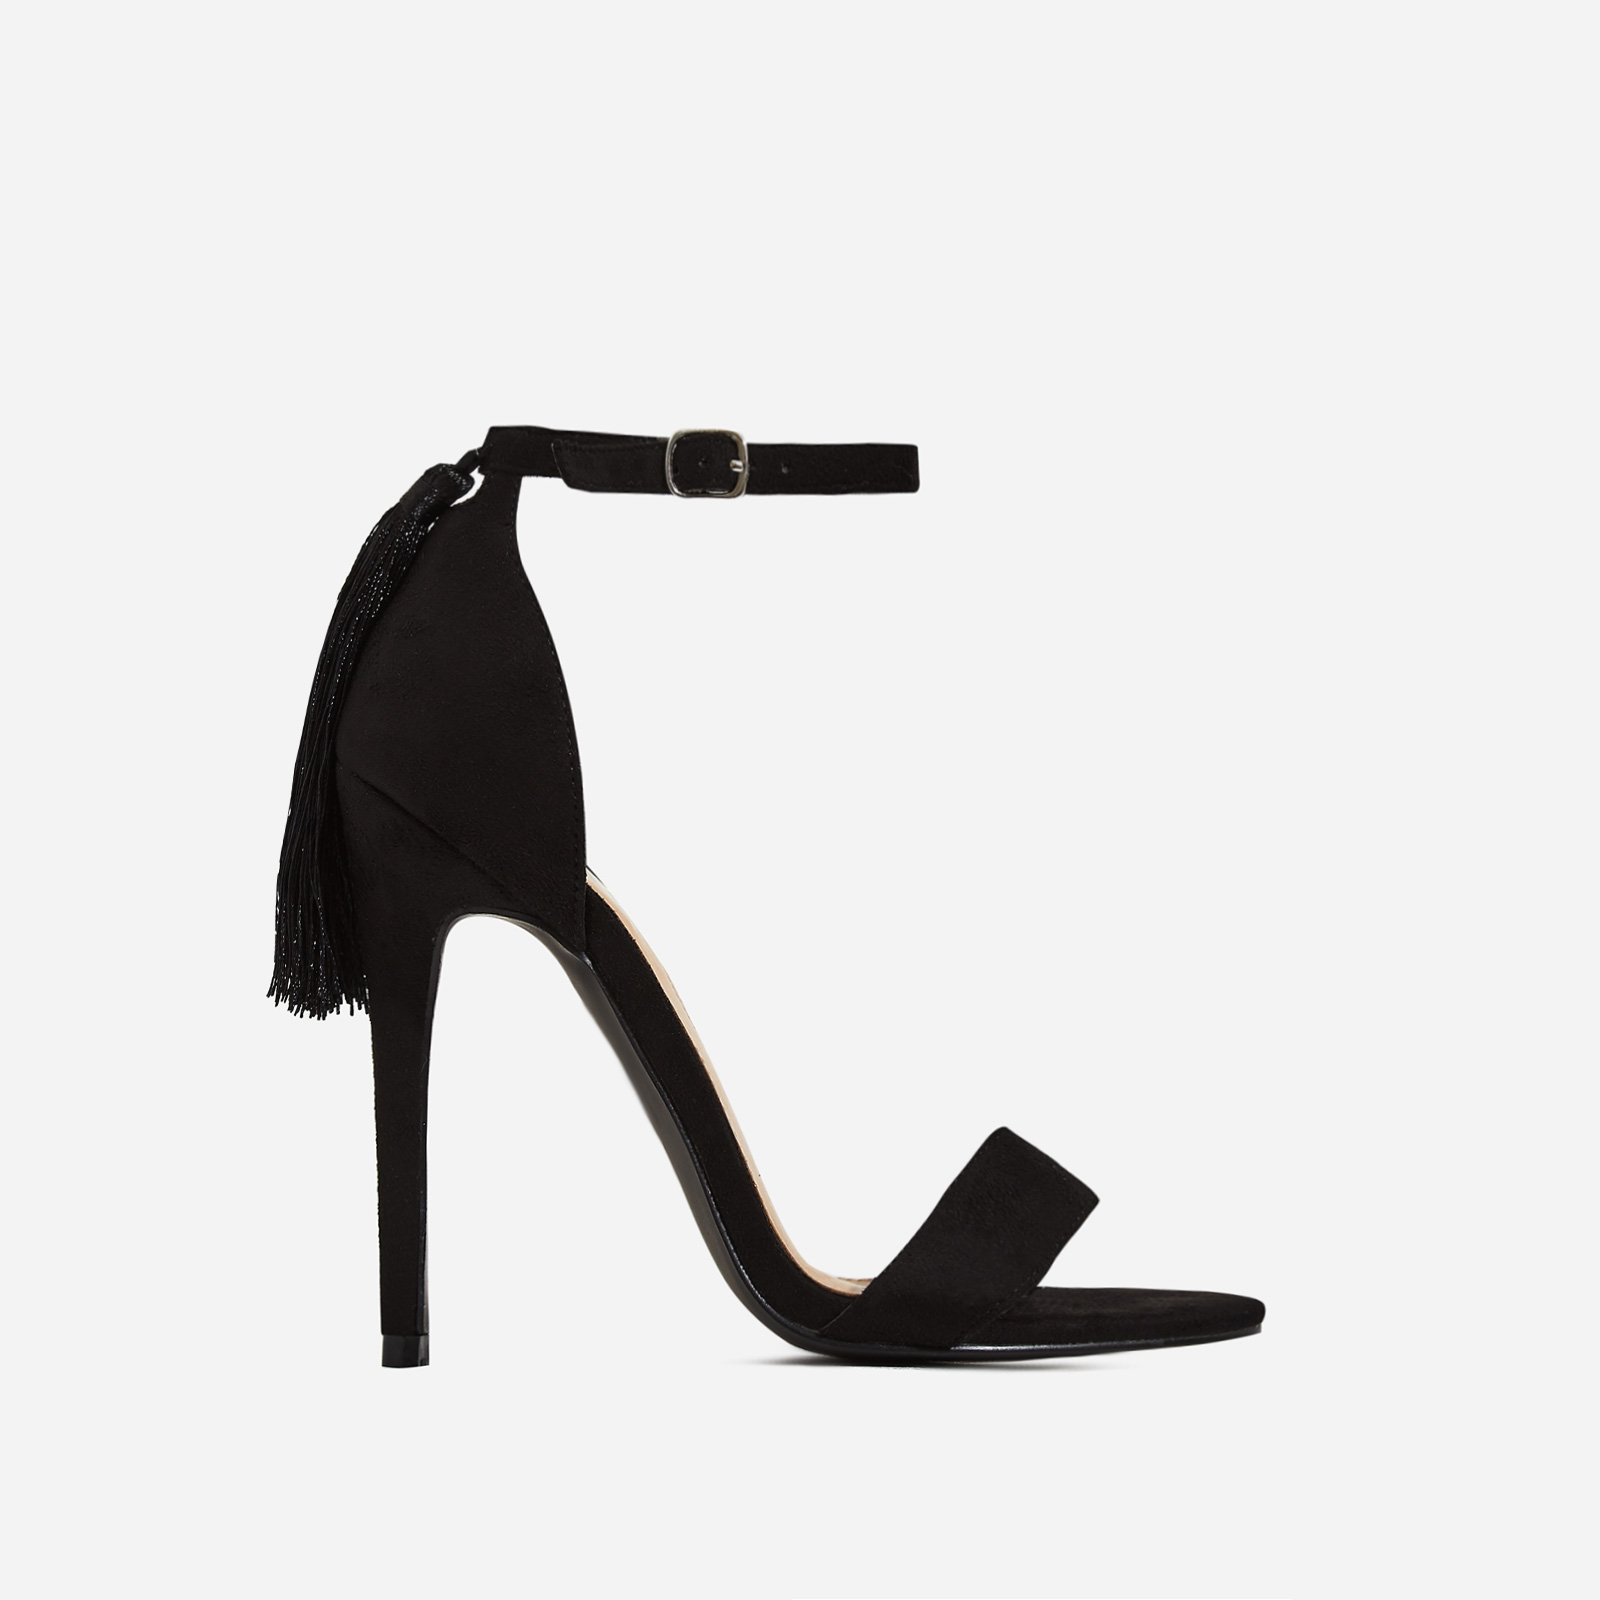 Tia Tassel Detail Barely There Heel In Black Faux Suede